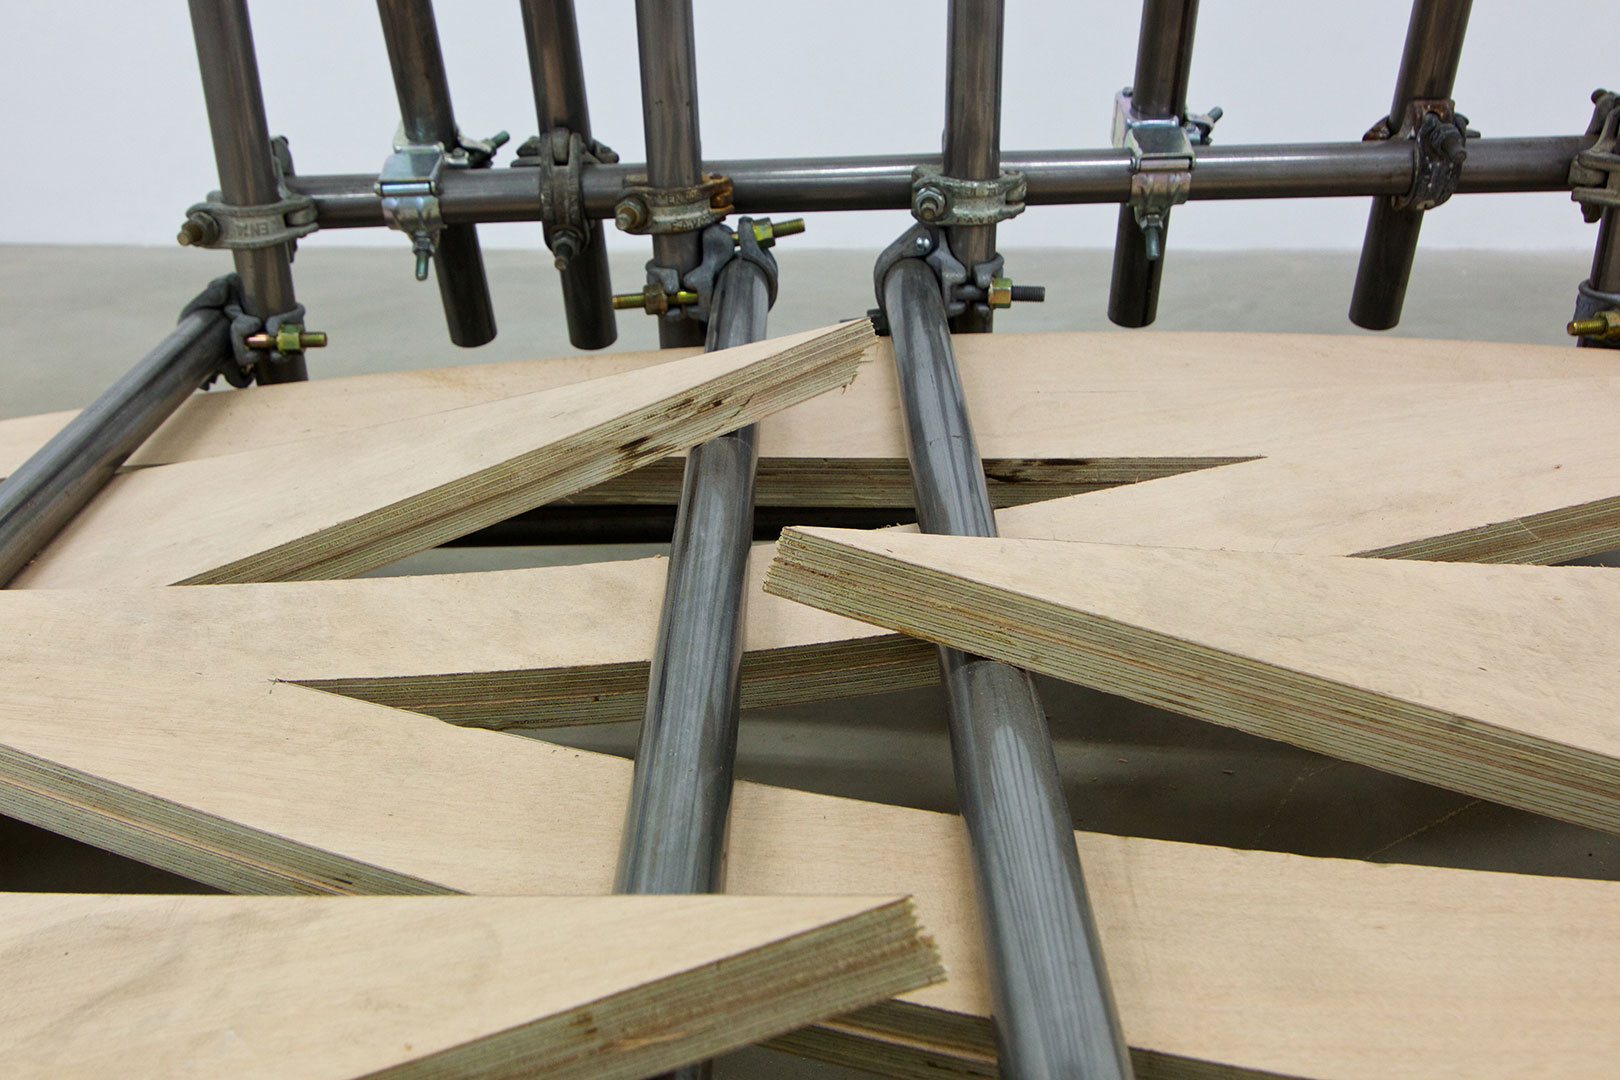 Untitled | 120 x 120 x 244 cm | Plywood, iron piping and scaffolding clumps